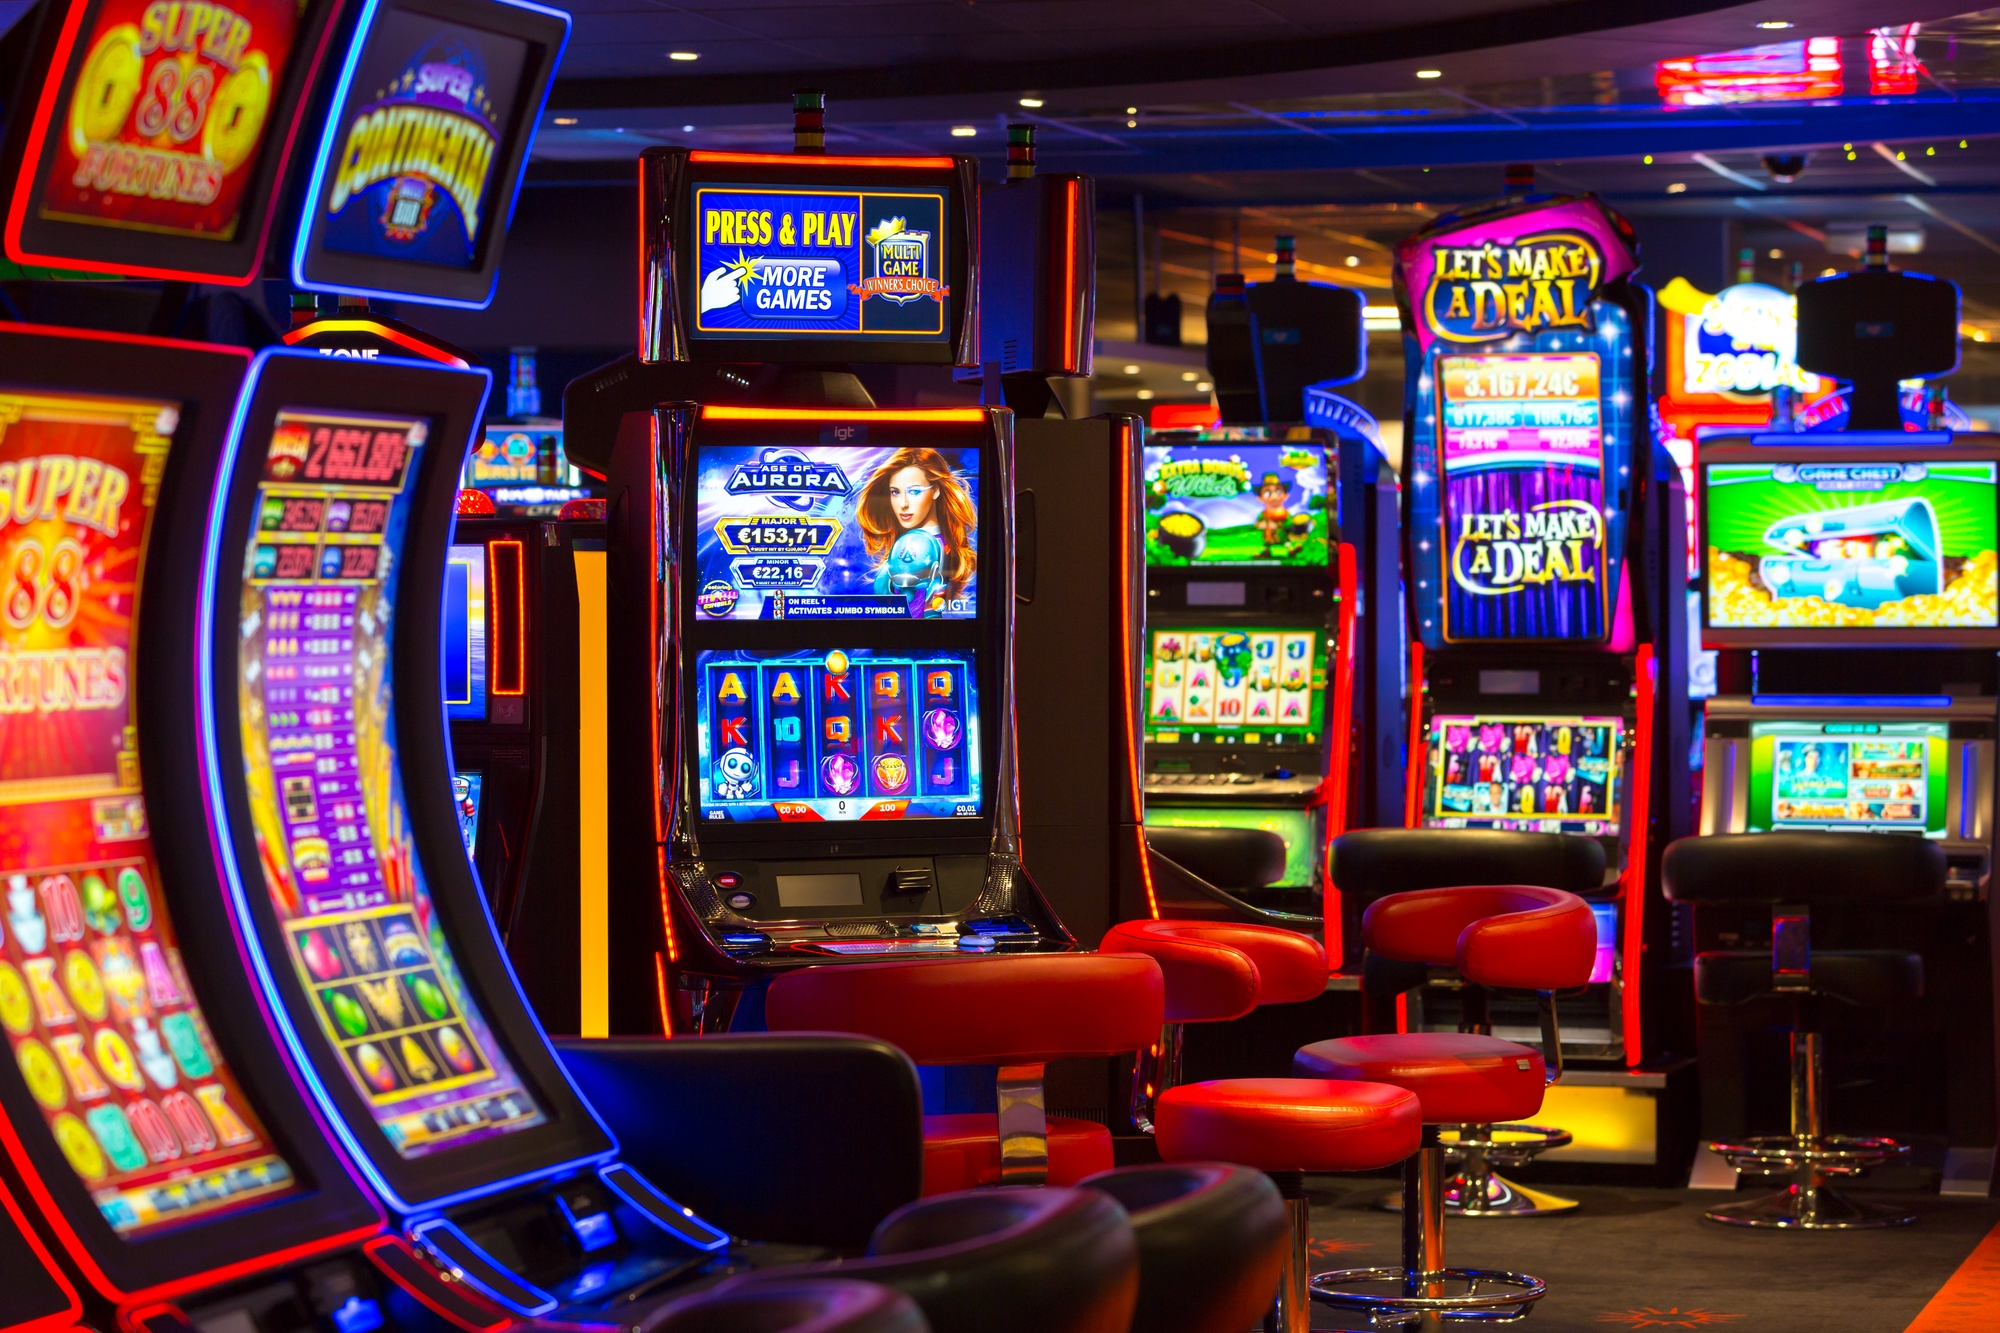 Know all about the Super Slots (ซุปเปอร์สล็อต) to be a pro